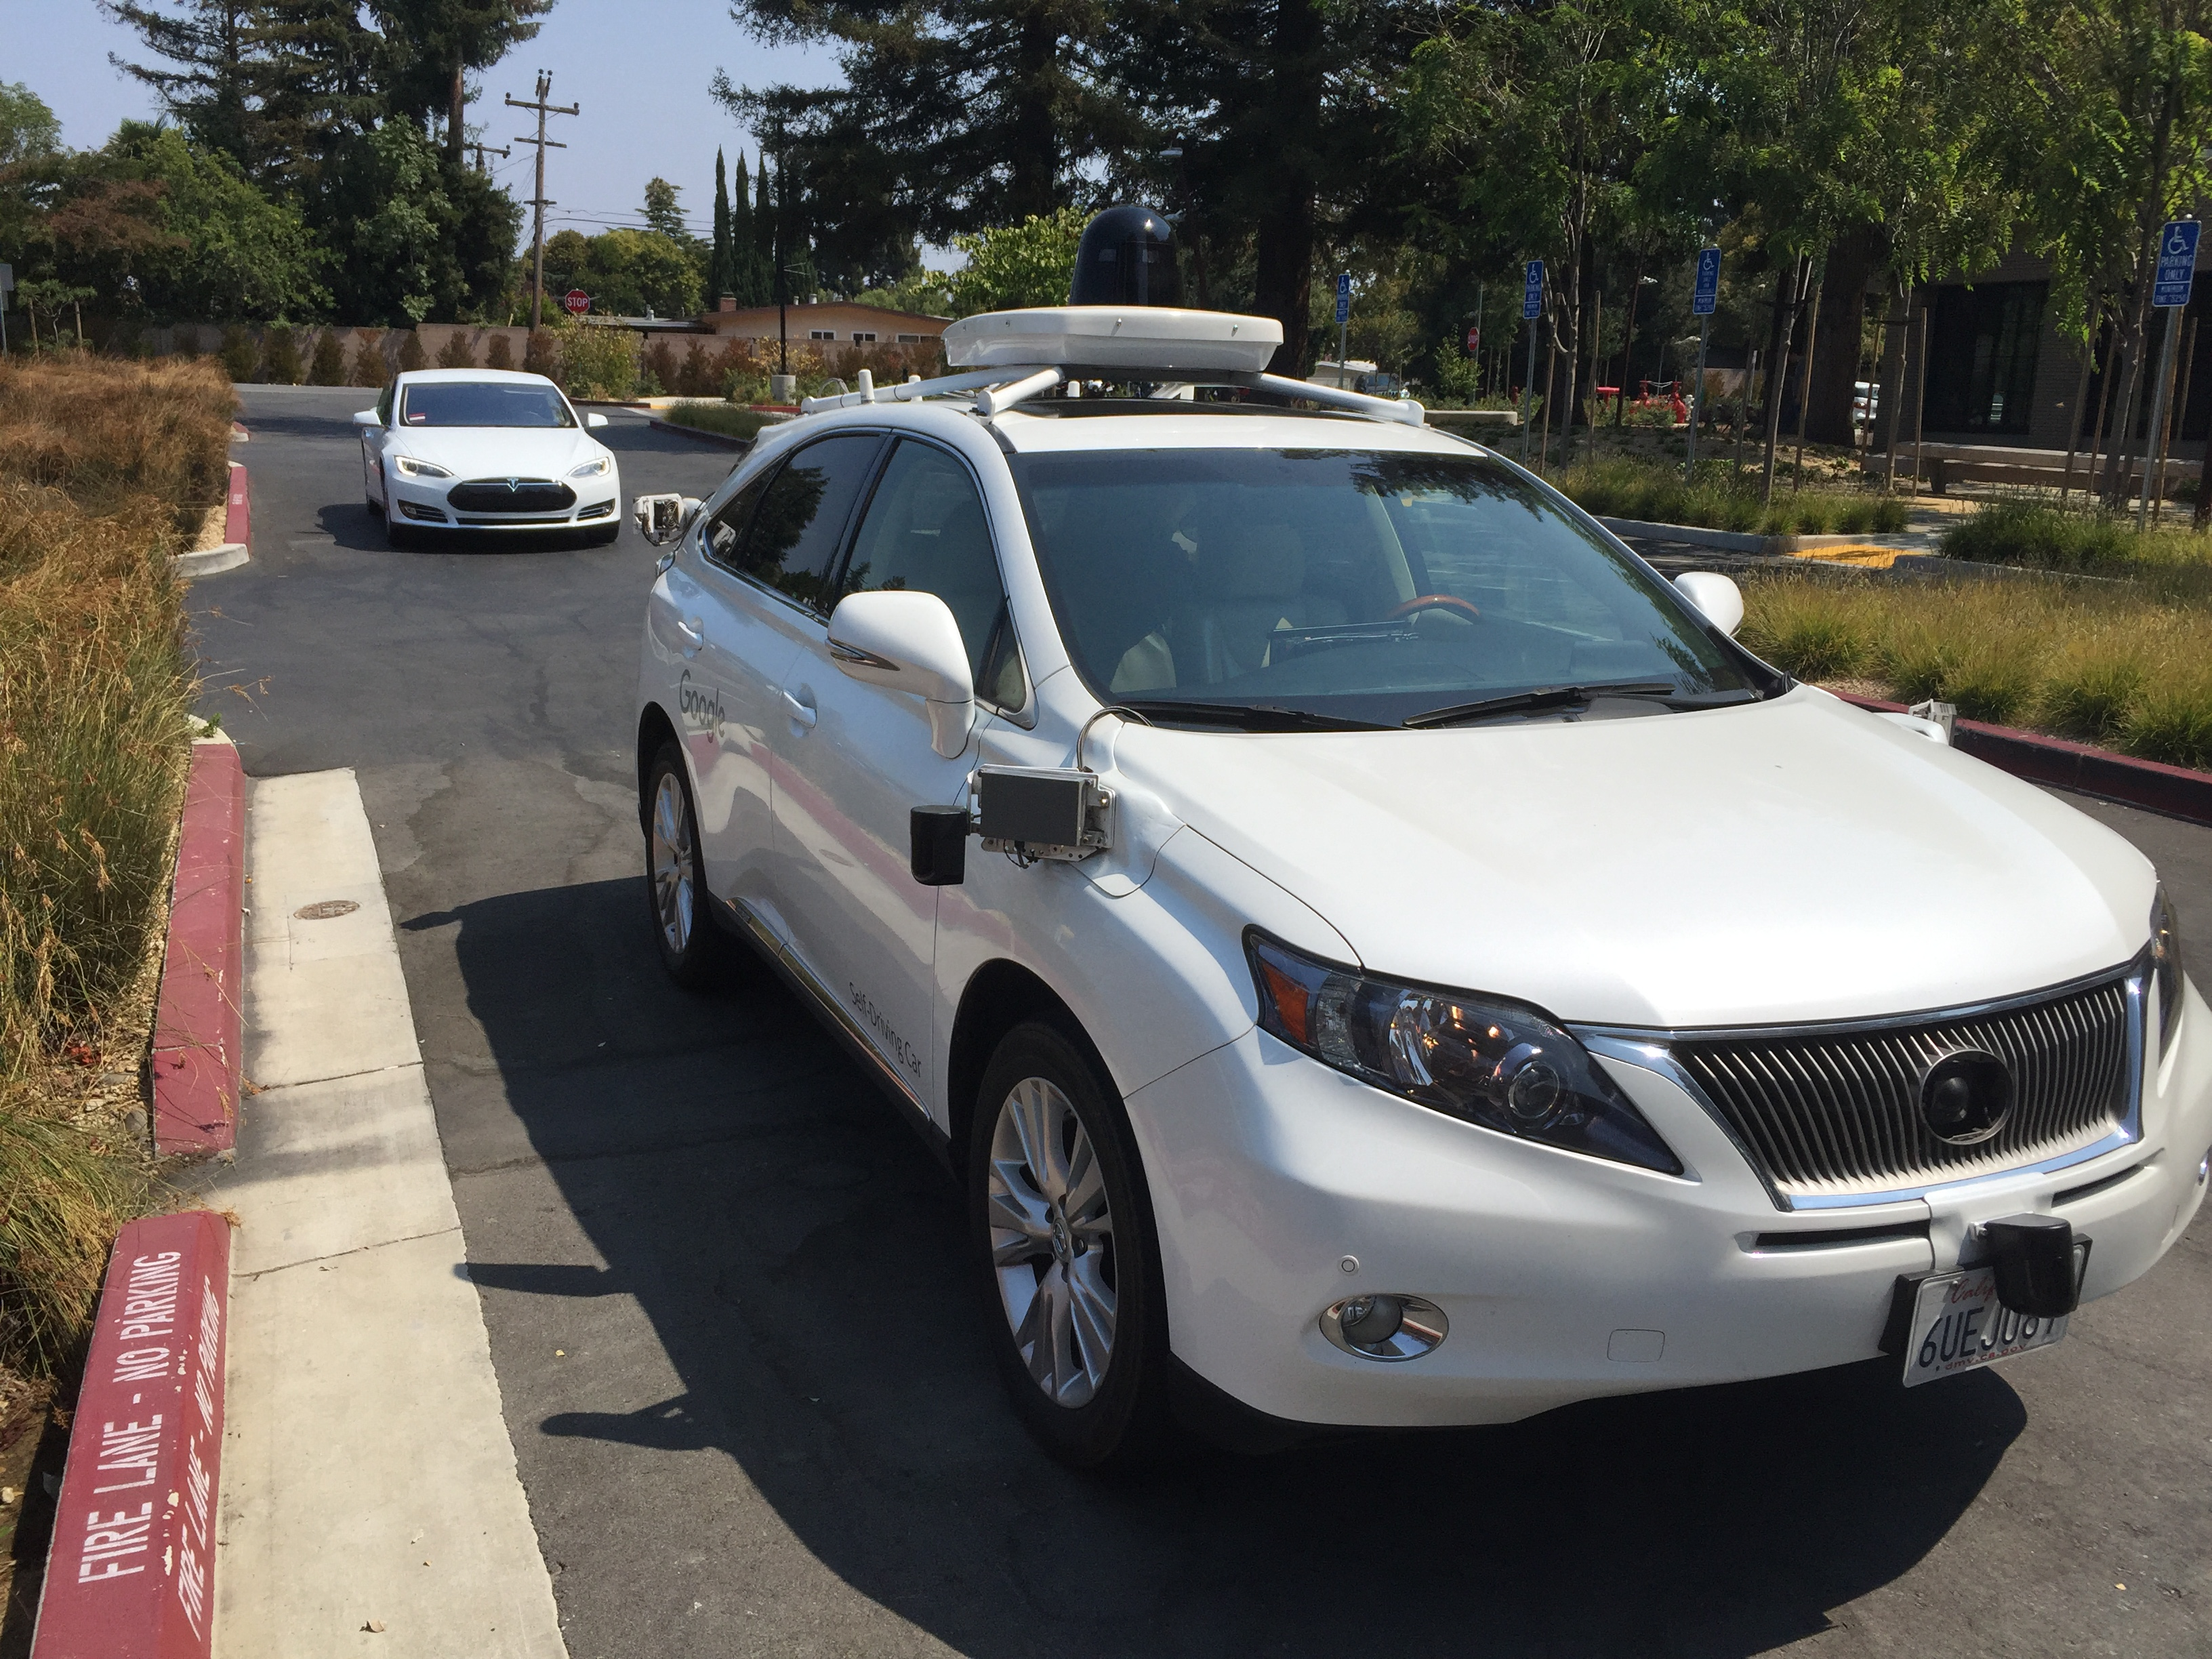 Google has more than fifty experimental self-driving cars on the road. About half are like this one – a modified Lexus RH450H – while the rest are small prototype test vehicles that don't have steering wheels.